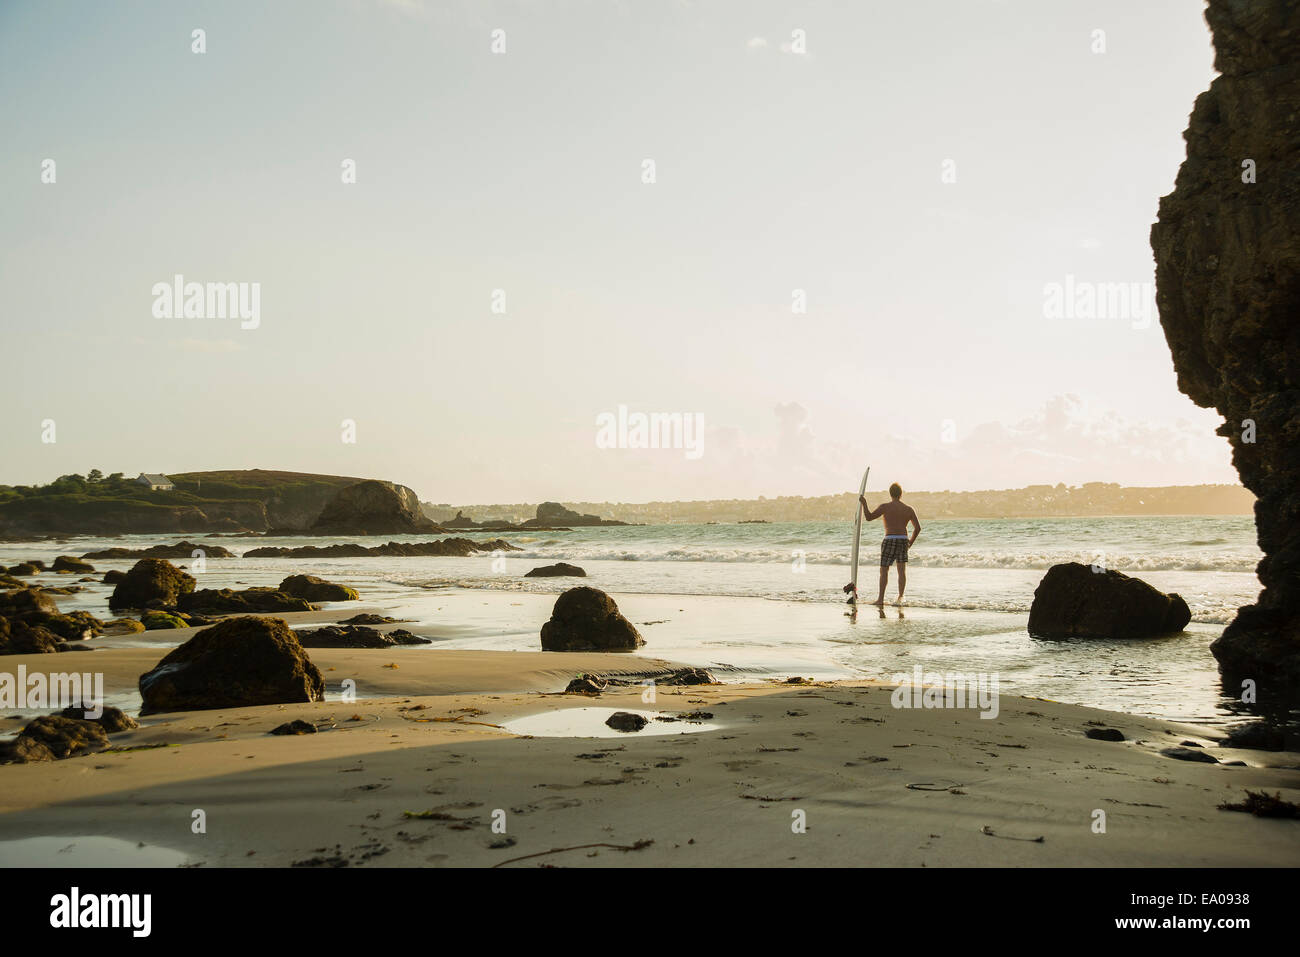 Veterinarian at waters edge holding surf board Photo Stock